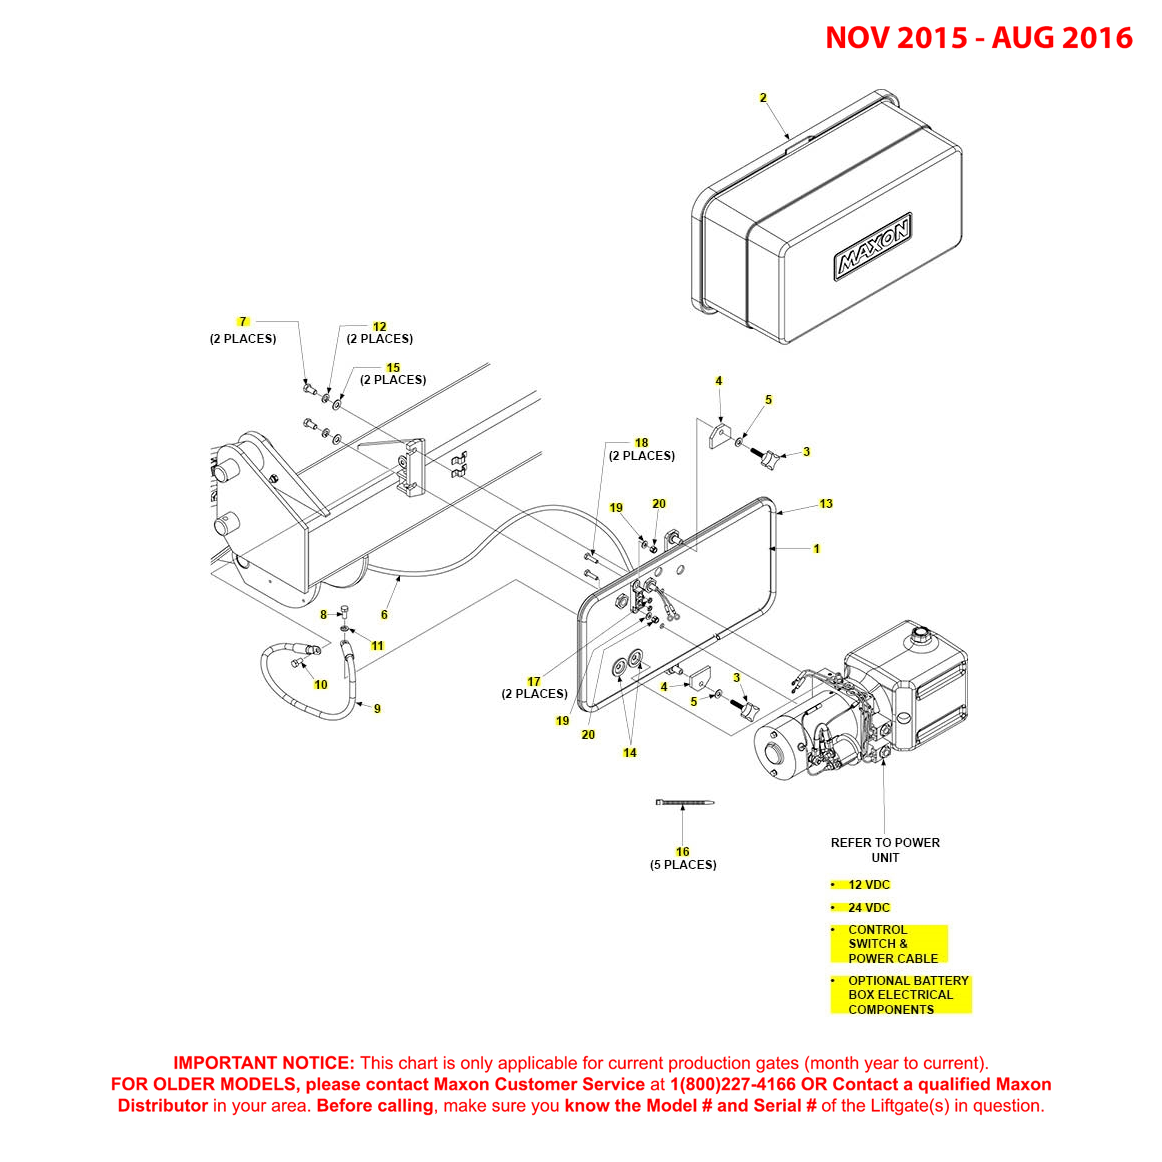 GPTWR (Nov 2015 - Aug 2016) Pump Cover And Mounting Plate Assembly Diagram